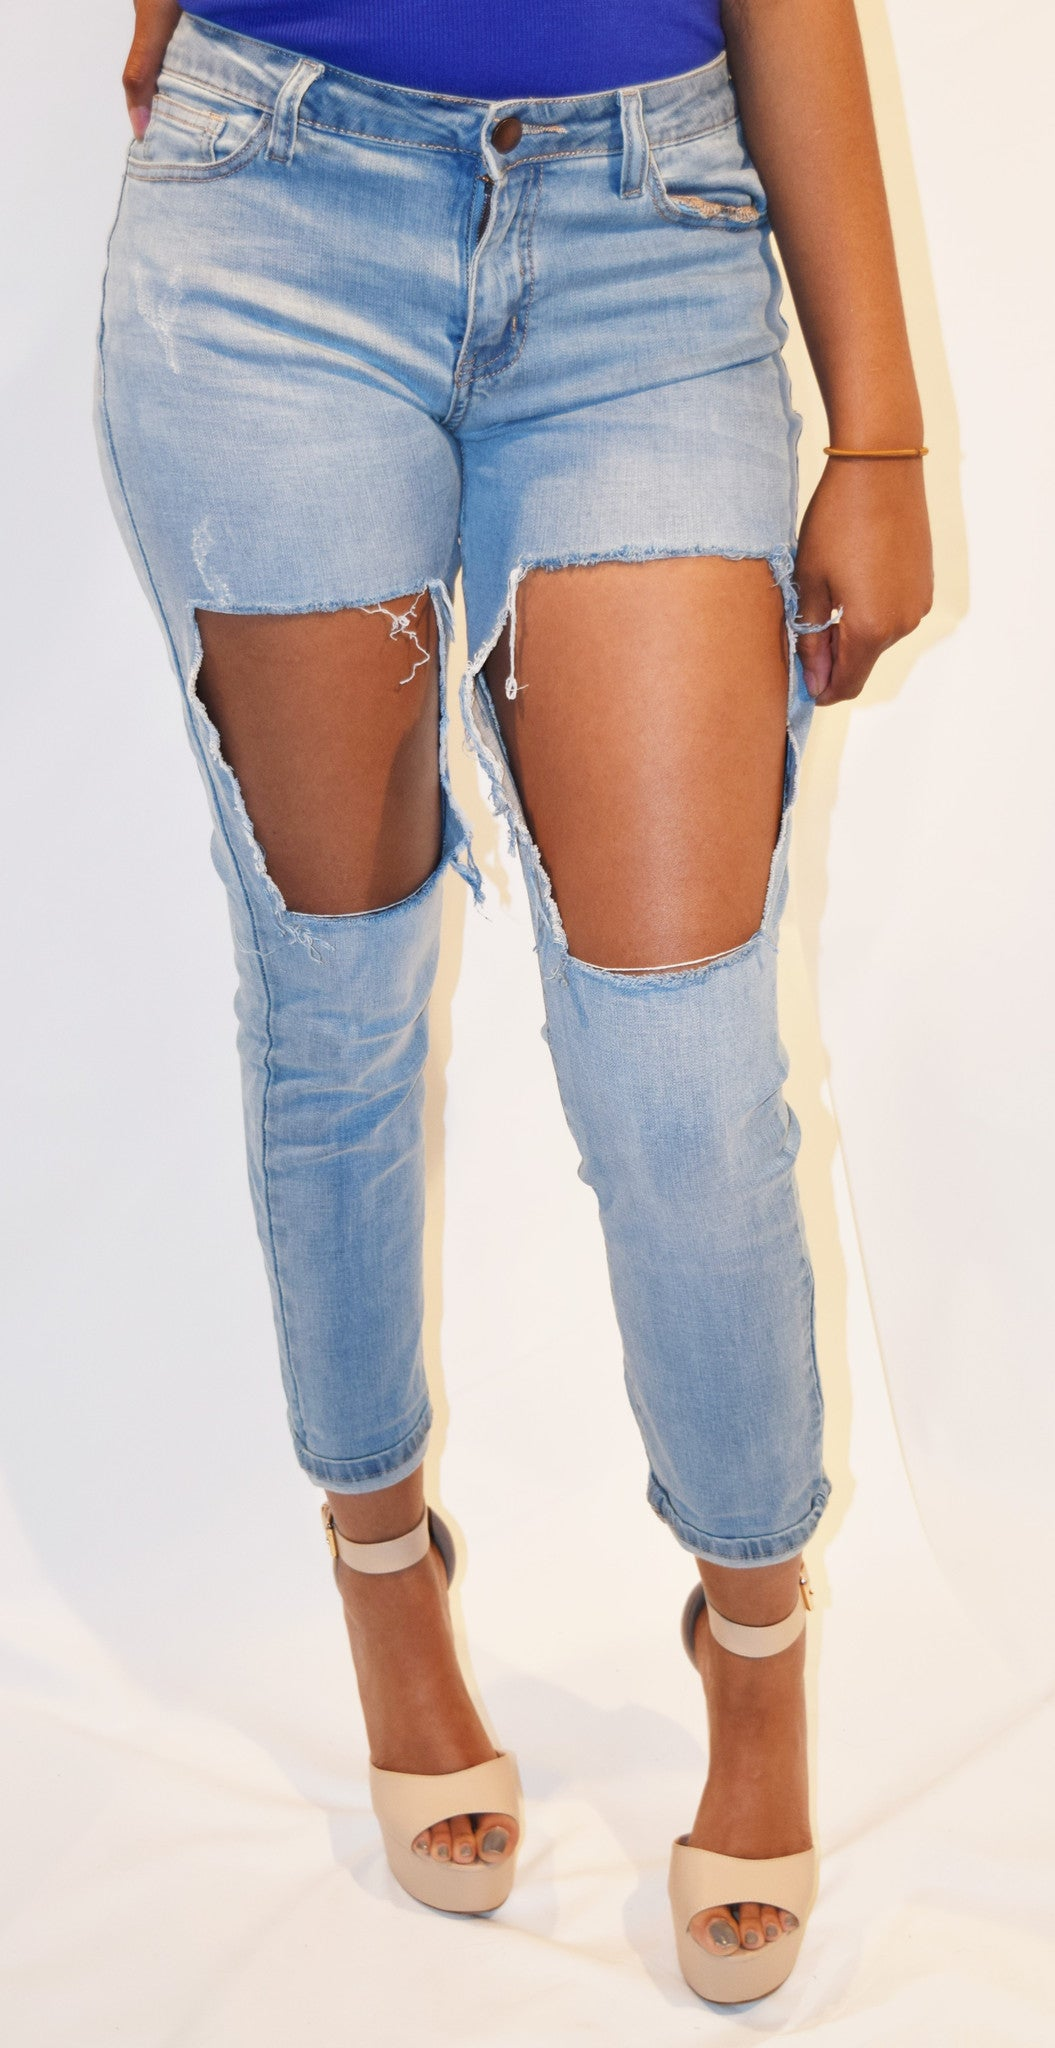 Gone Off the Rip Boyfriend Distressed Jean - Blacque Onyx Apparel